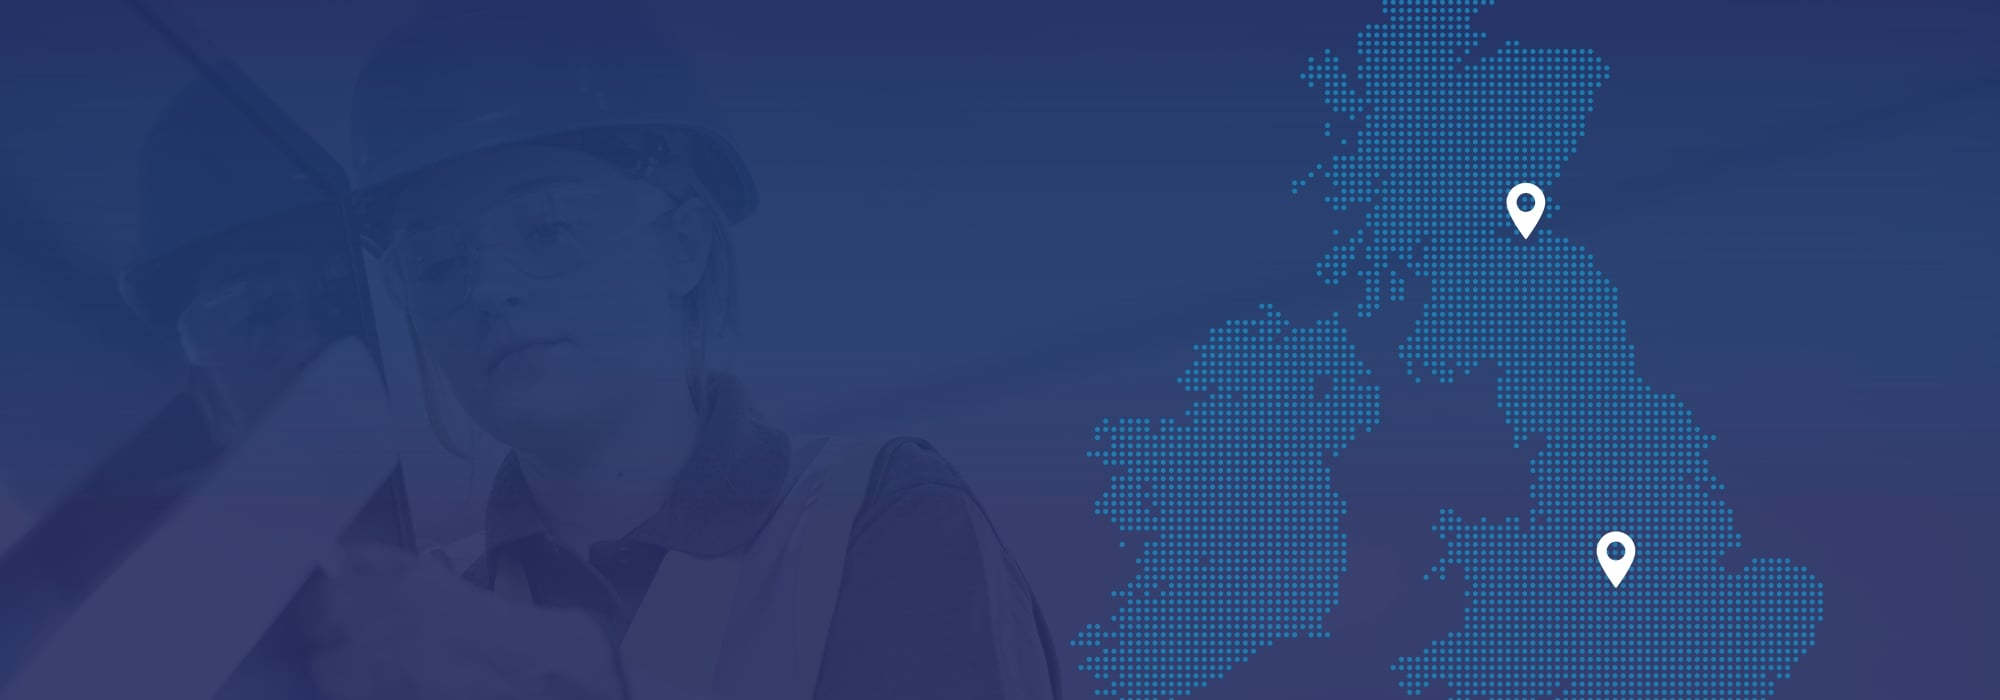 <h1> Aspire to Succeed</h1> <p> QFI awarding regulated qualifications for technical industries in England and Scotland</p>